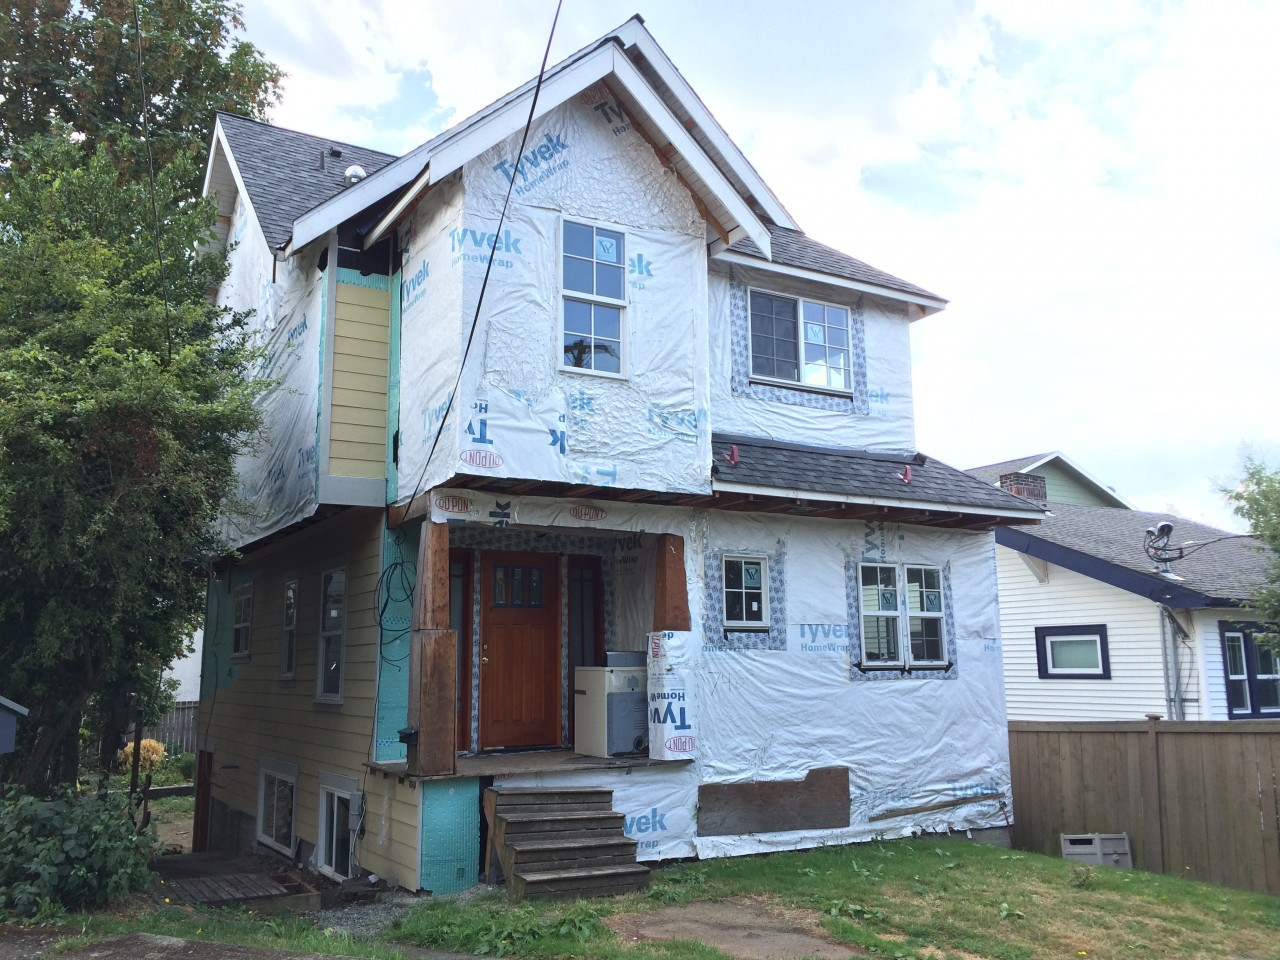 House covered in Tyvek